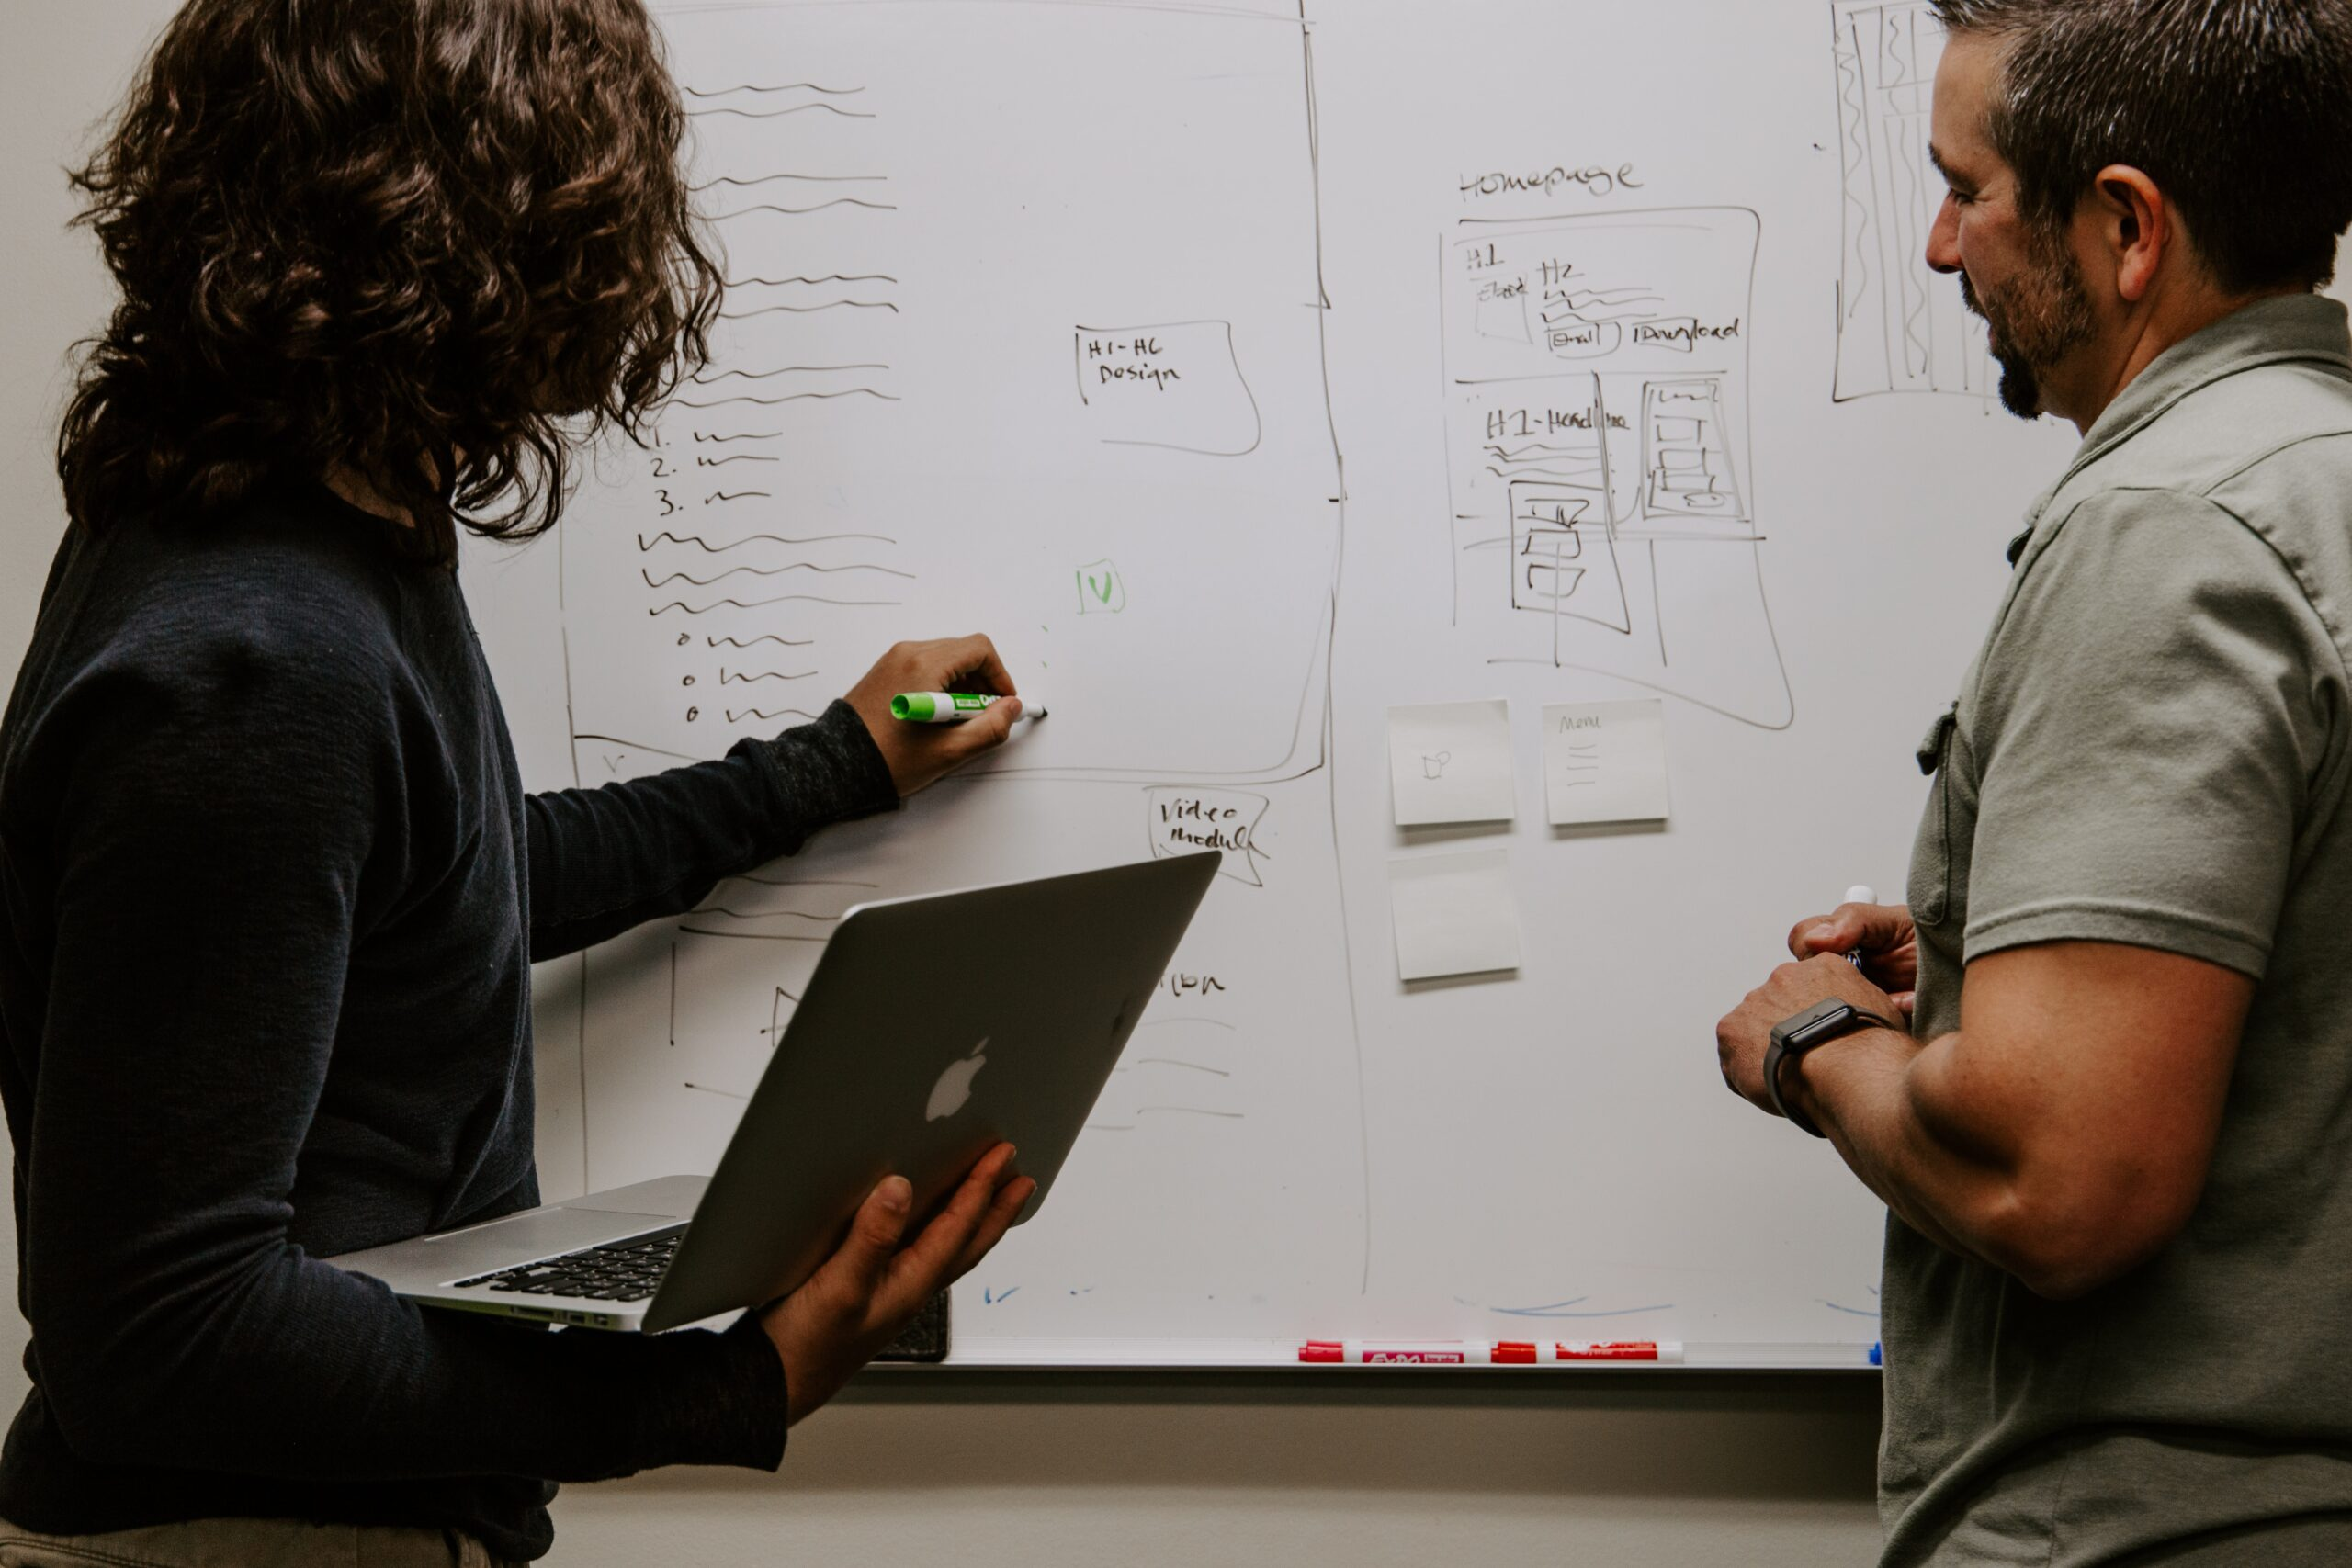 Photo of people at a white board discussing business ideas